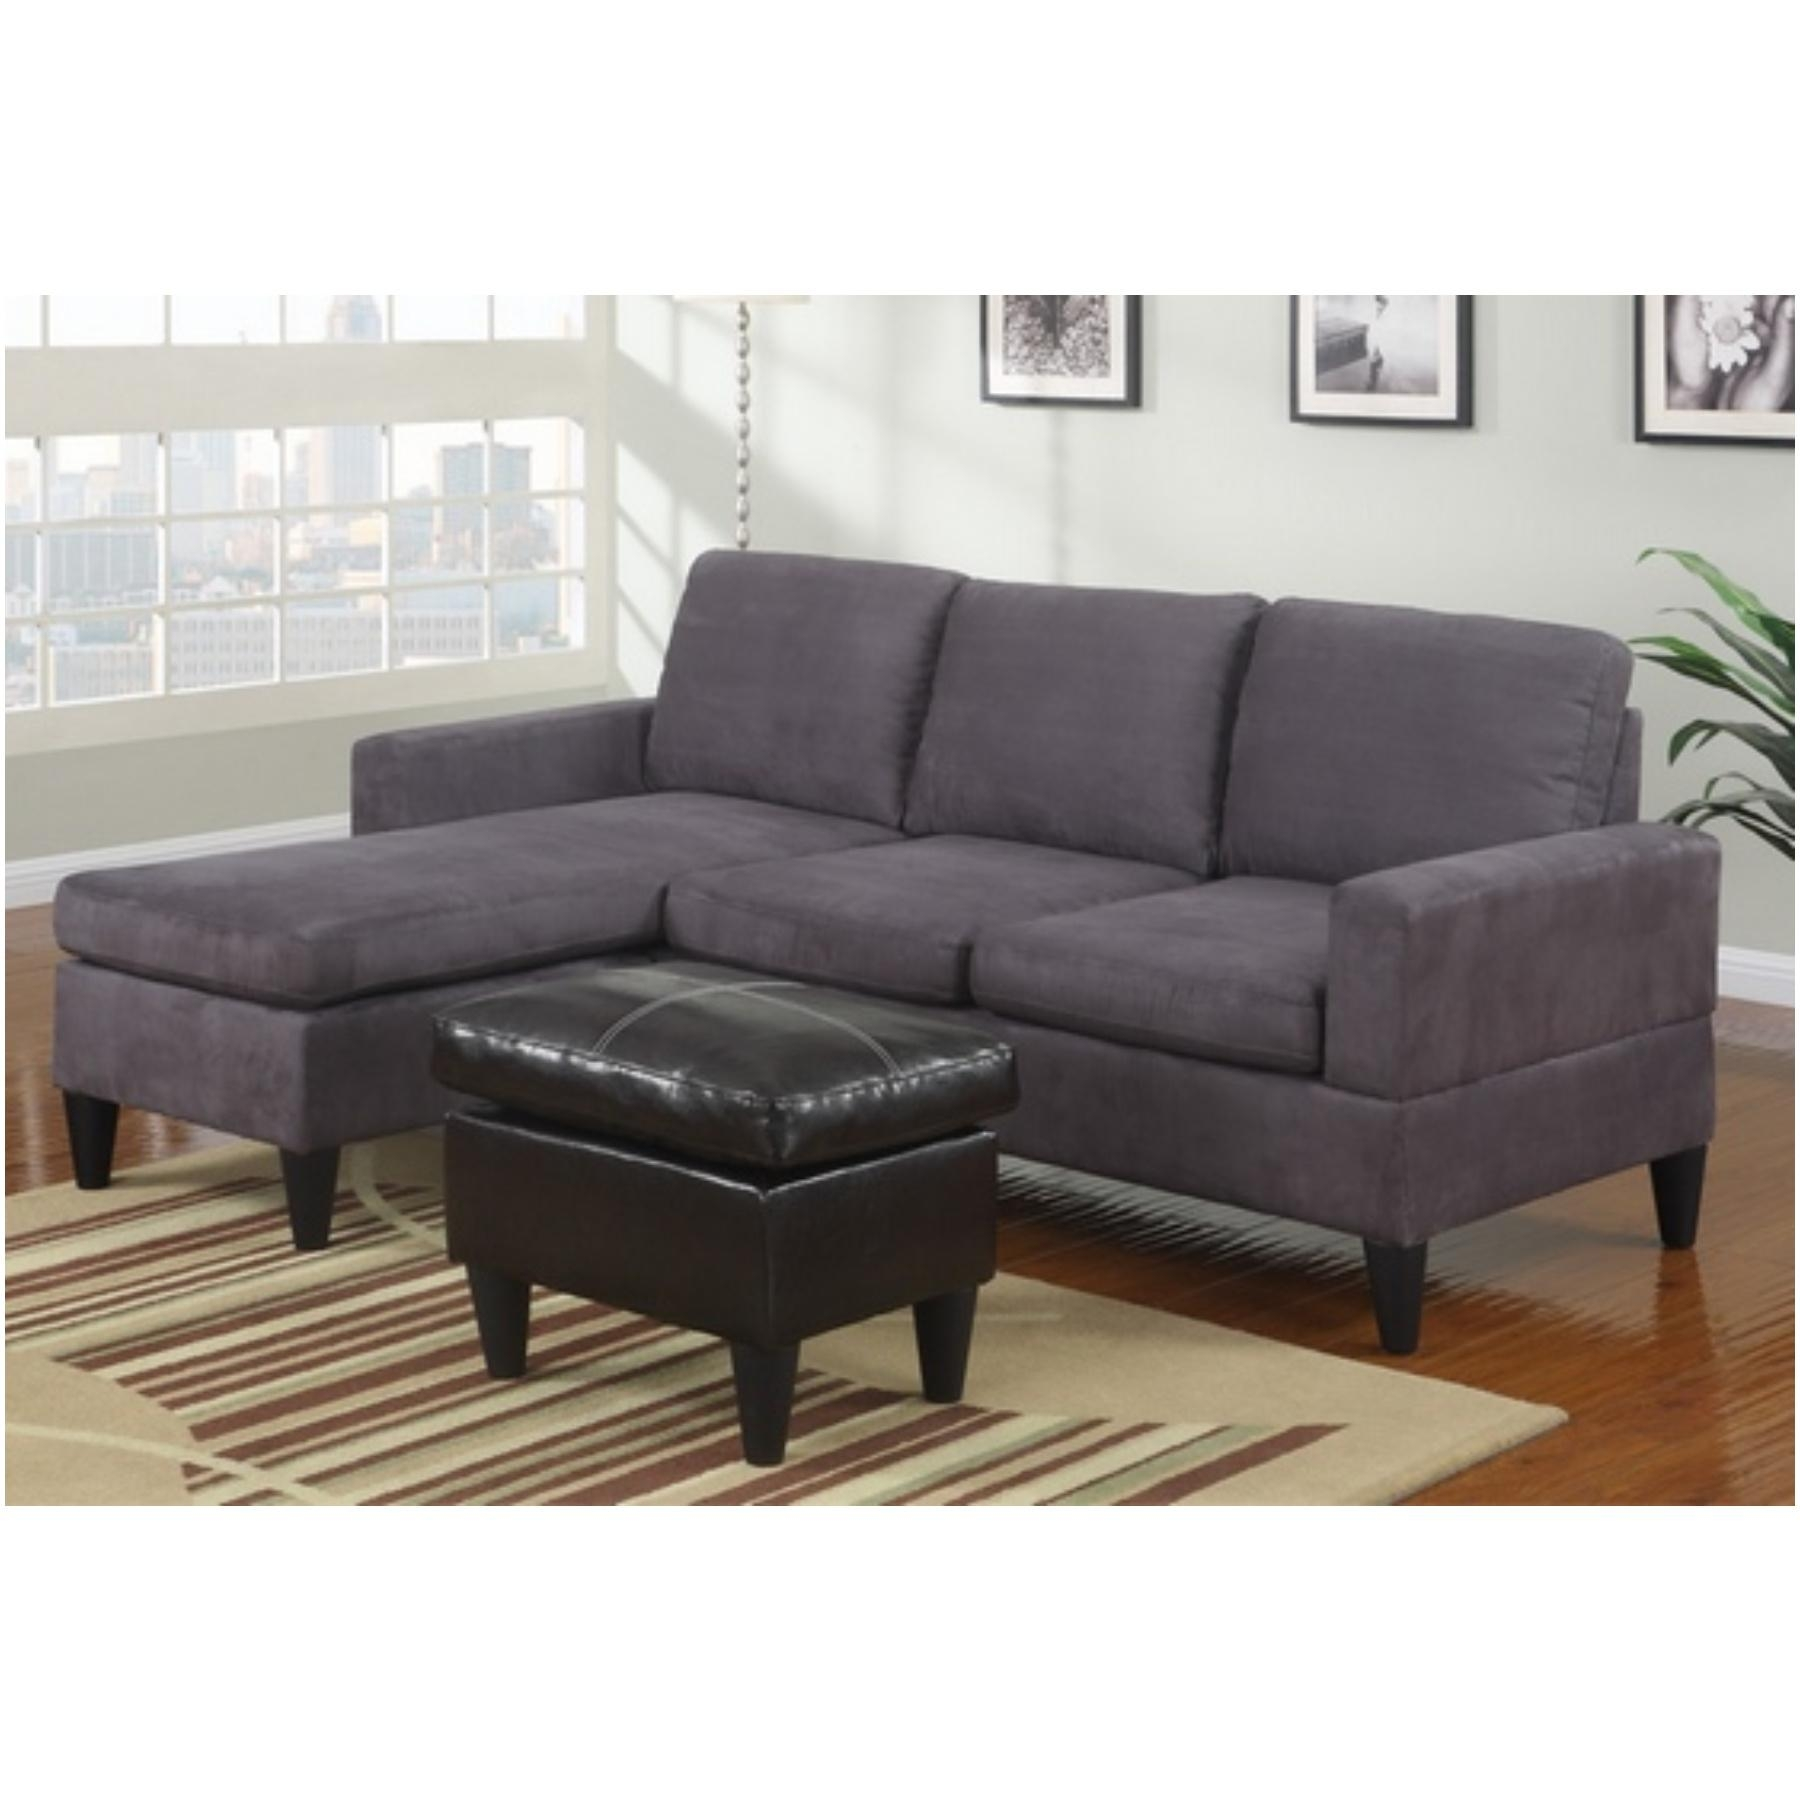 Apartment Size Sectional Sofa With Chaise | Tehranmix Decoration Regarding Apartment Sectional With Chaise (Image 4 of 15)